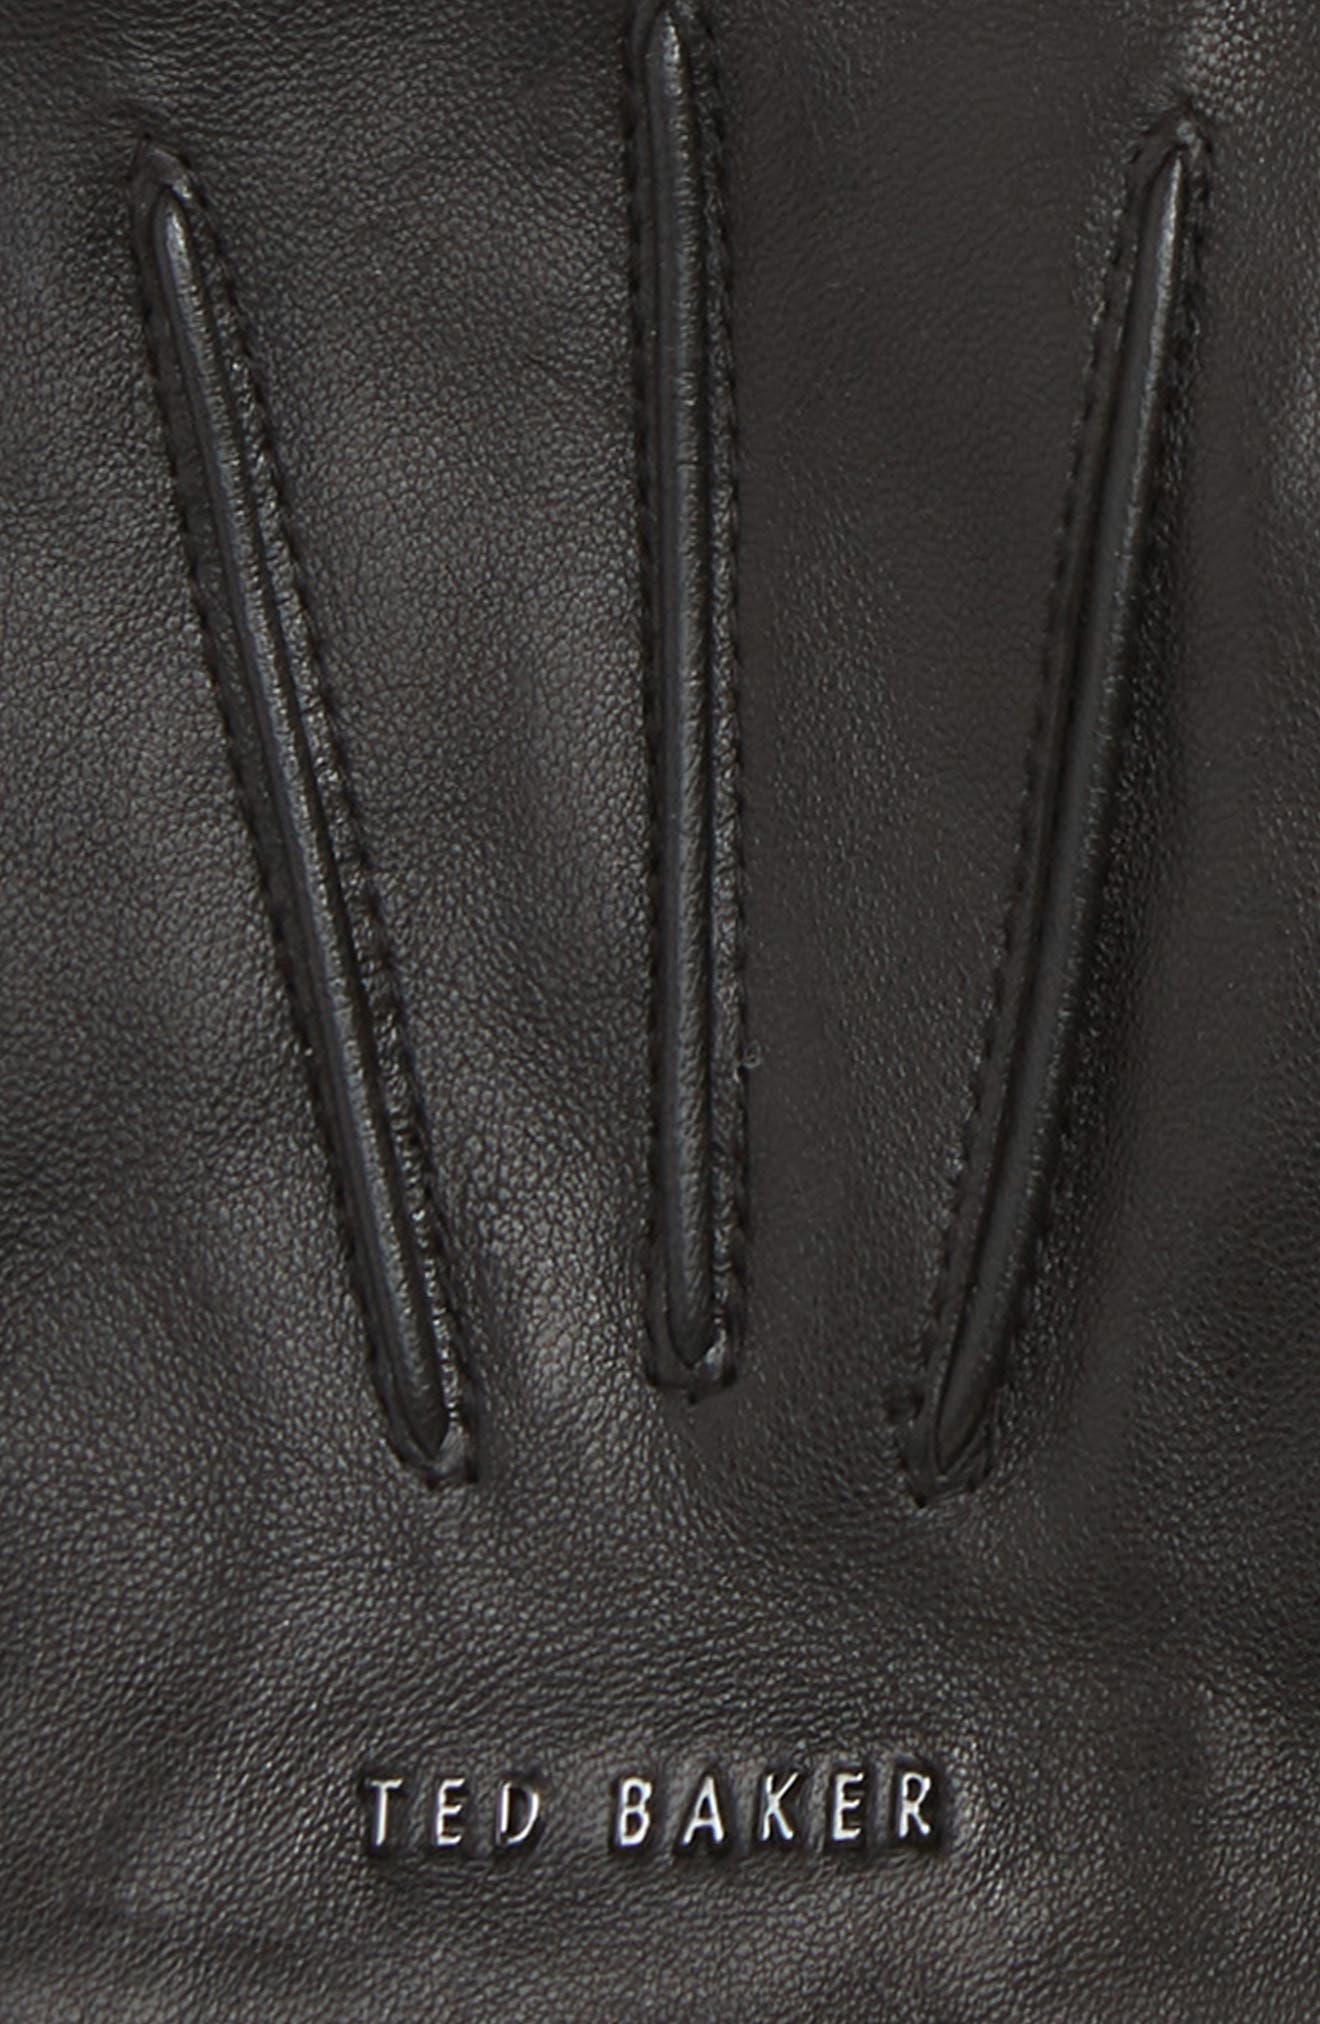 Cuffed Leather Touchscreen Gloves,                             Alternate thumbnail 3, color,                             001